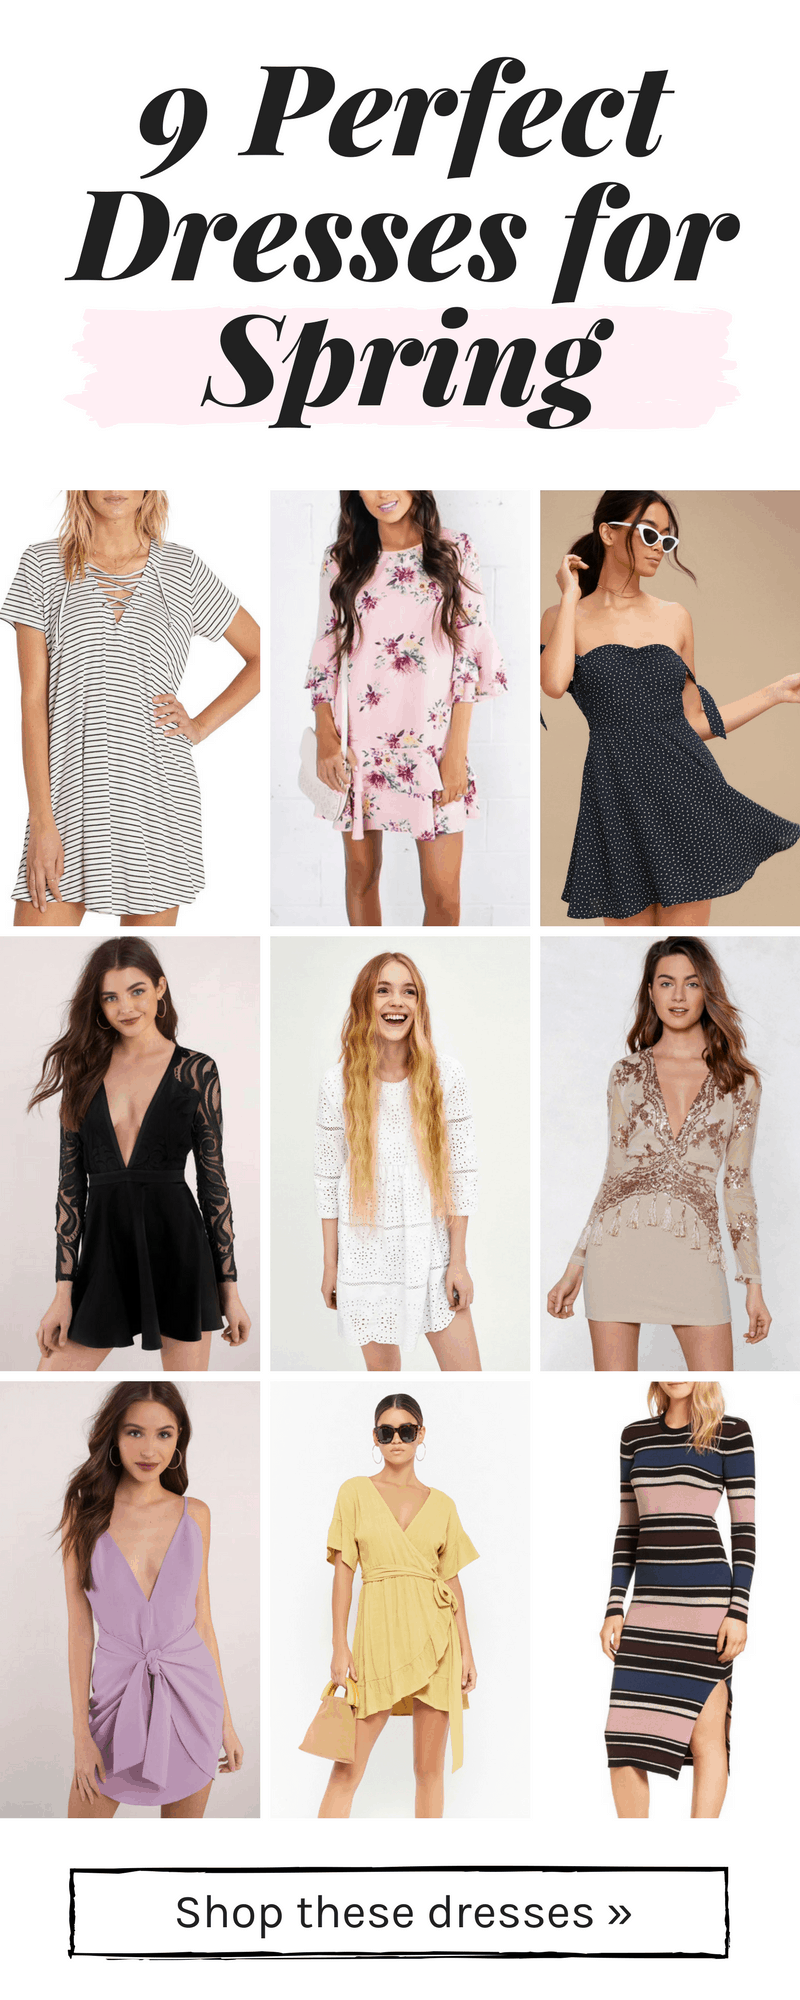 Cute spring dresses for 2018 - 9 perfect dresses for all of your spring events